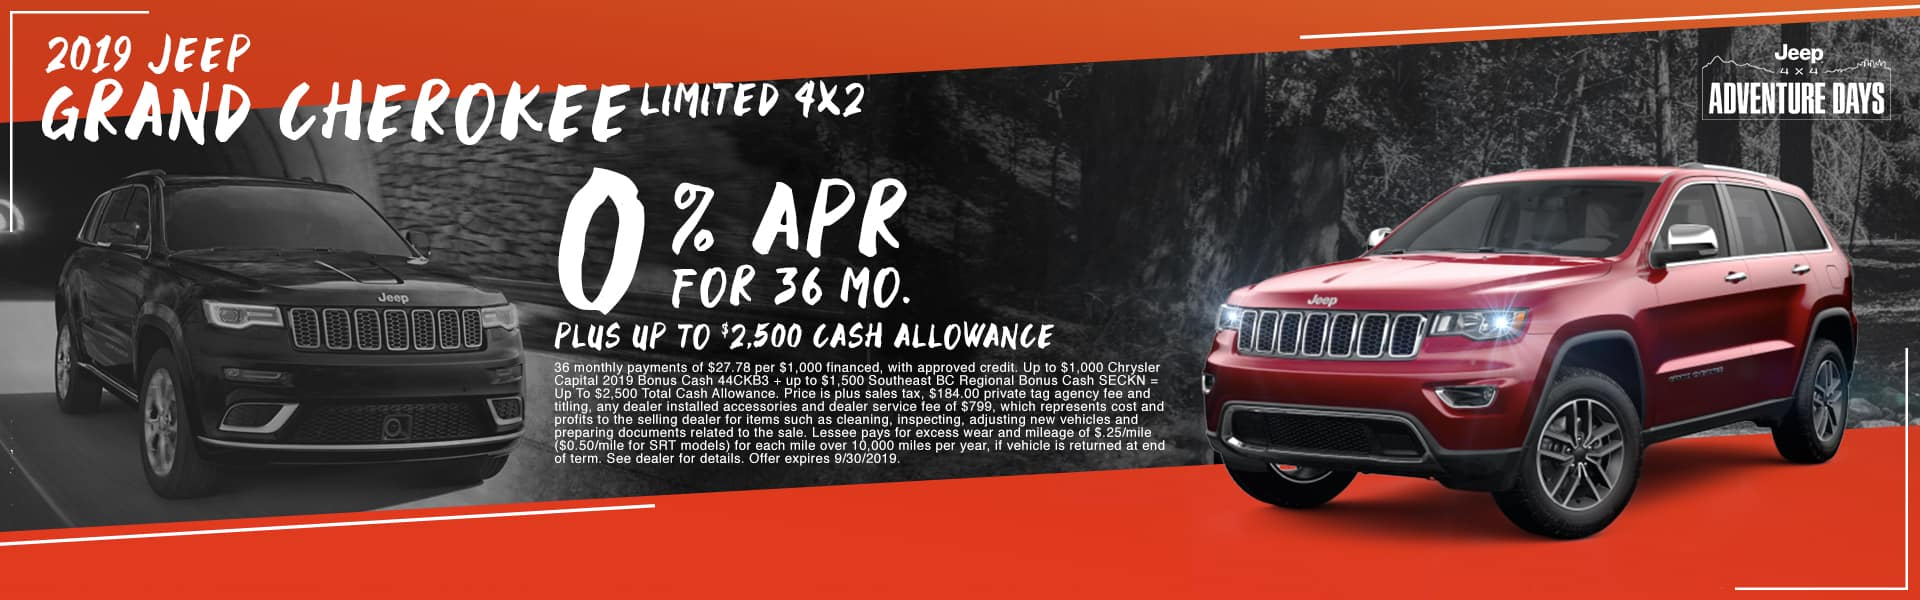 2019 Jeep Grand Cherokee Limited 4x2 | 0% APR For 36 Months PLUS Up To $2,500 Cash Allowance | Jeep 4x4 Adventure Days